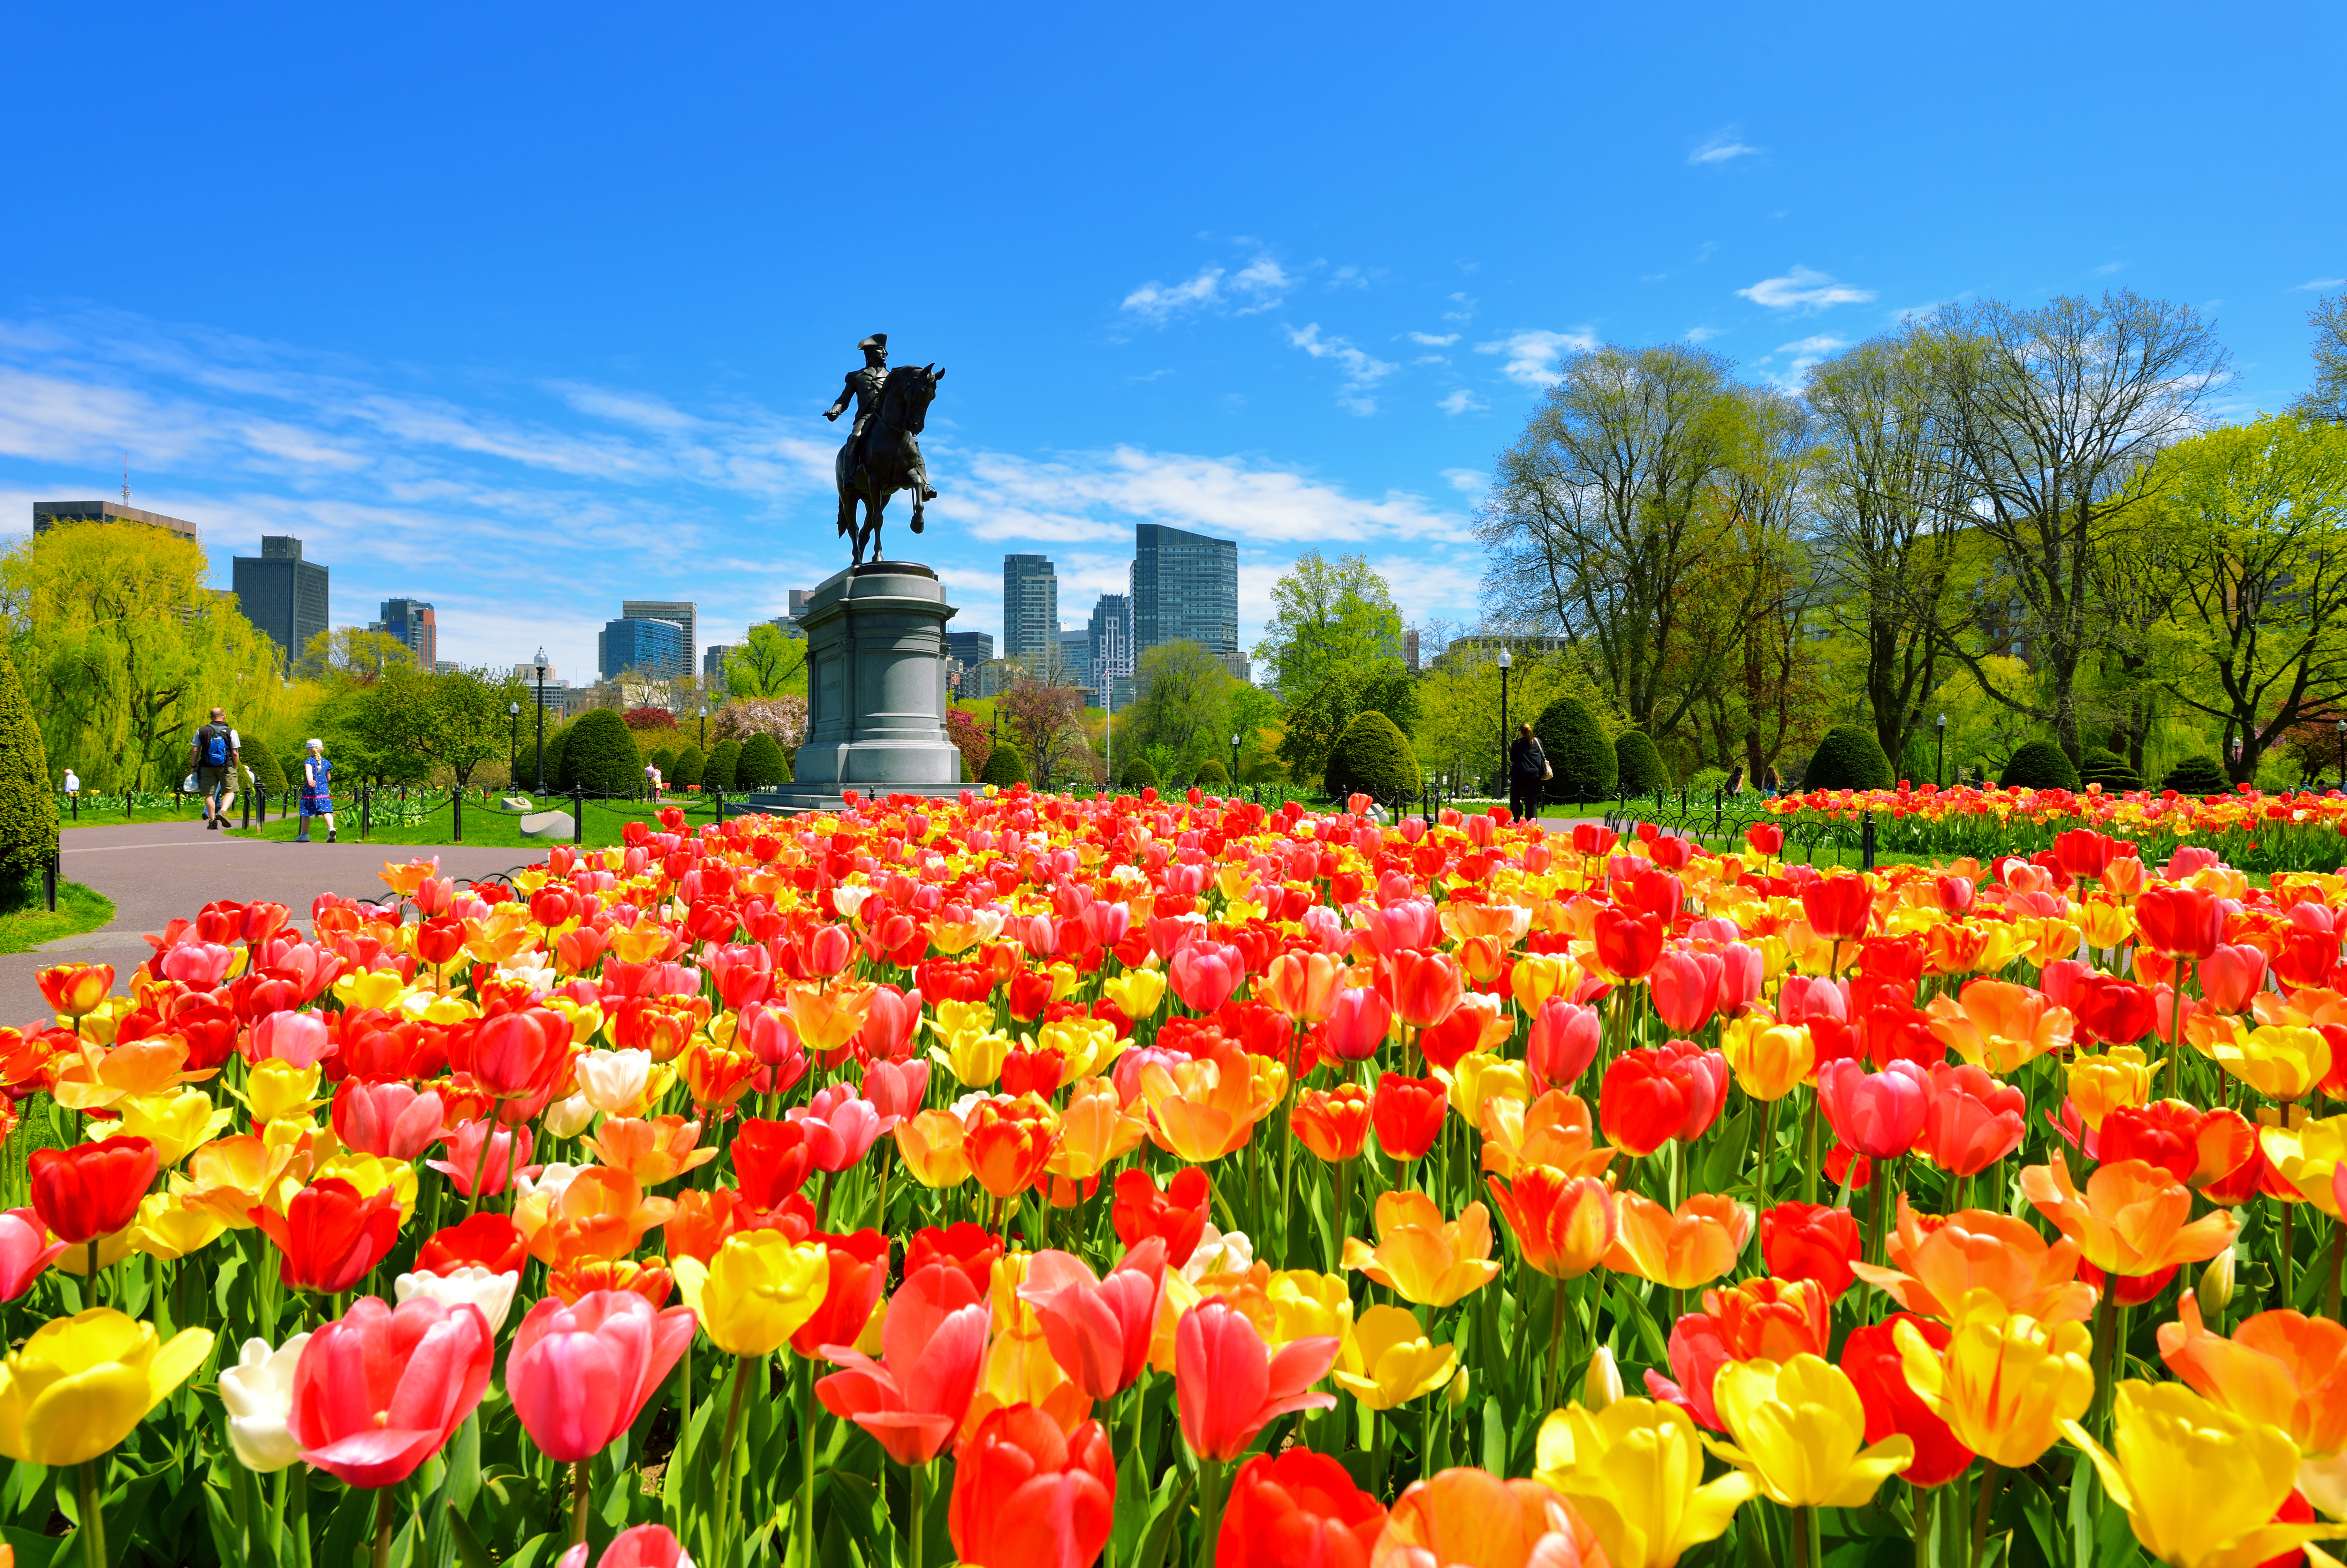 Boston's most Instagrammable locations in the spring